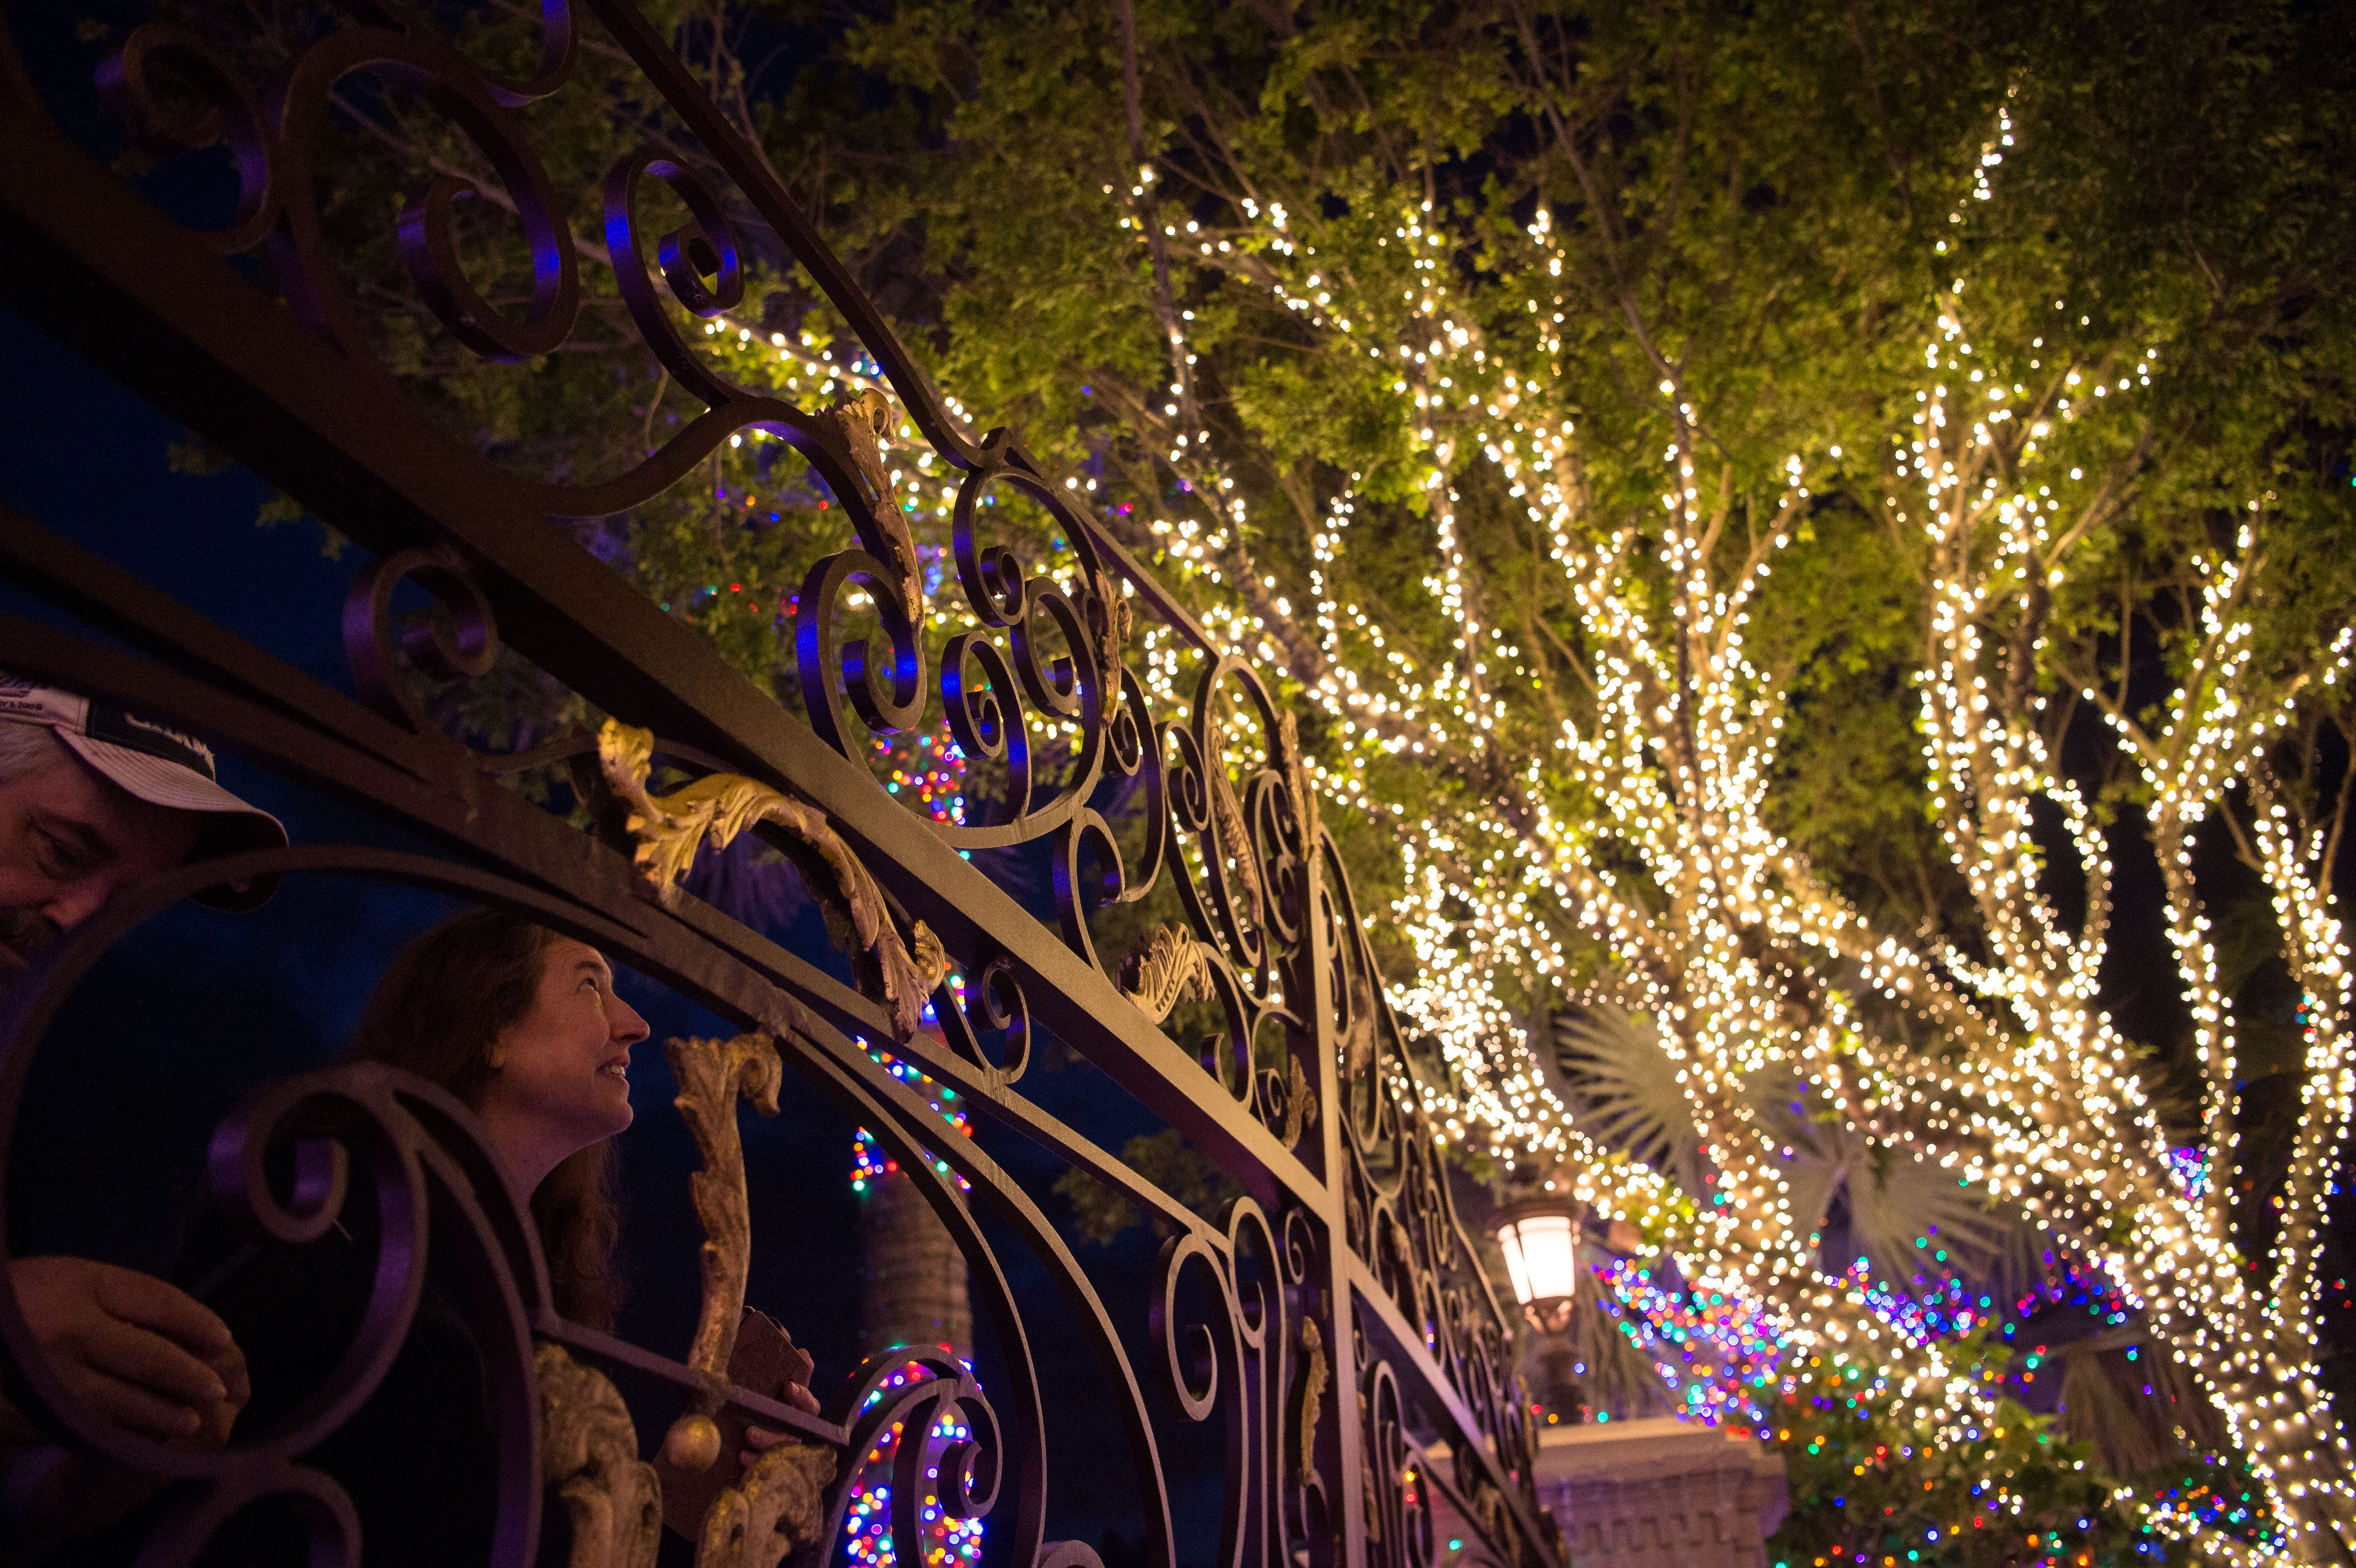 Best Places To See Christmas Lights Boynton Beach Fl 2021 New Christmas Lights Join Annual Displays To Brighten Holiday Season